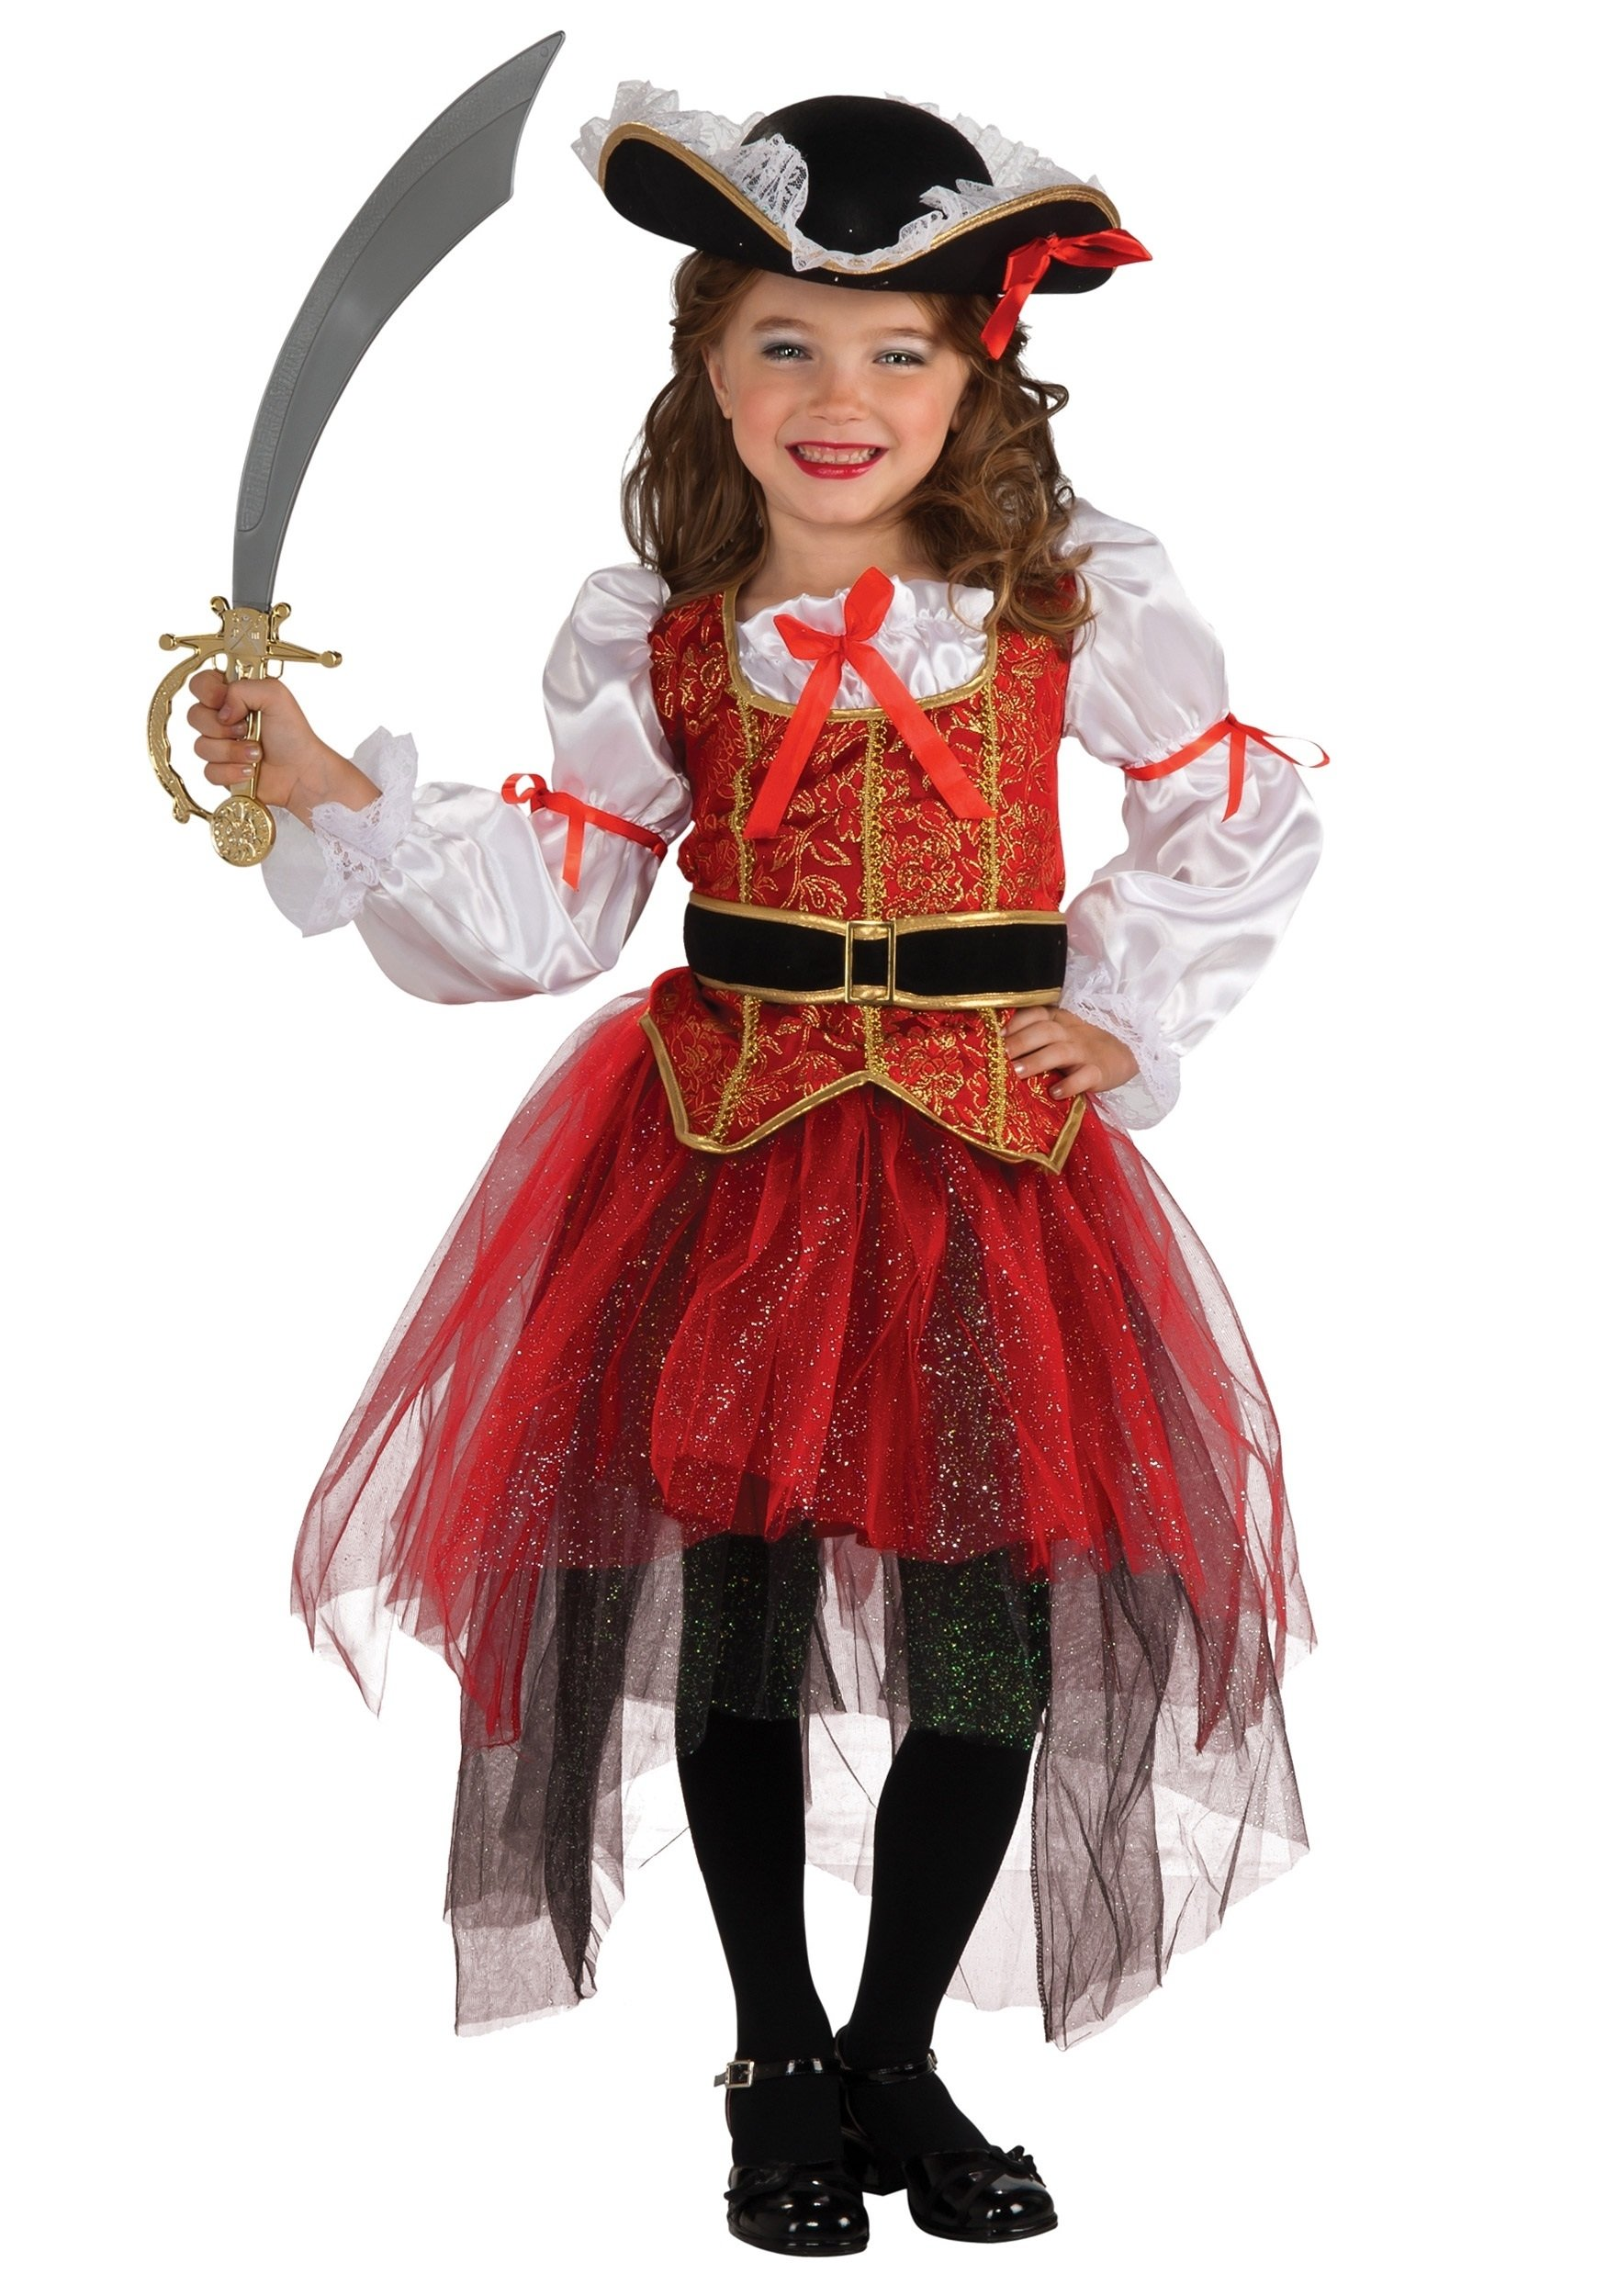 10 Great Pirate Costume Ideas For Kids girls princess pirate costume kids tutu pirate costume ideas 2020